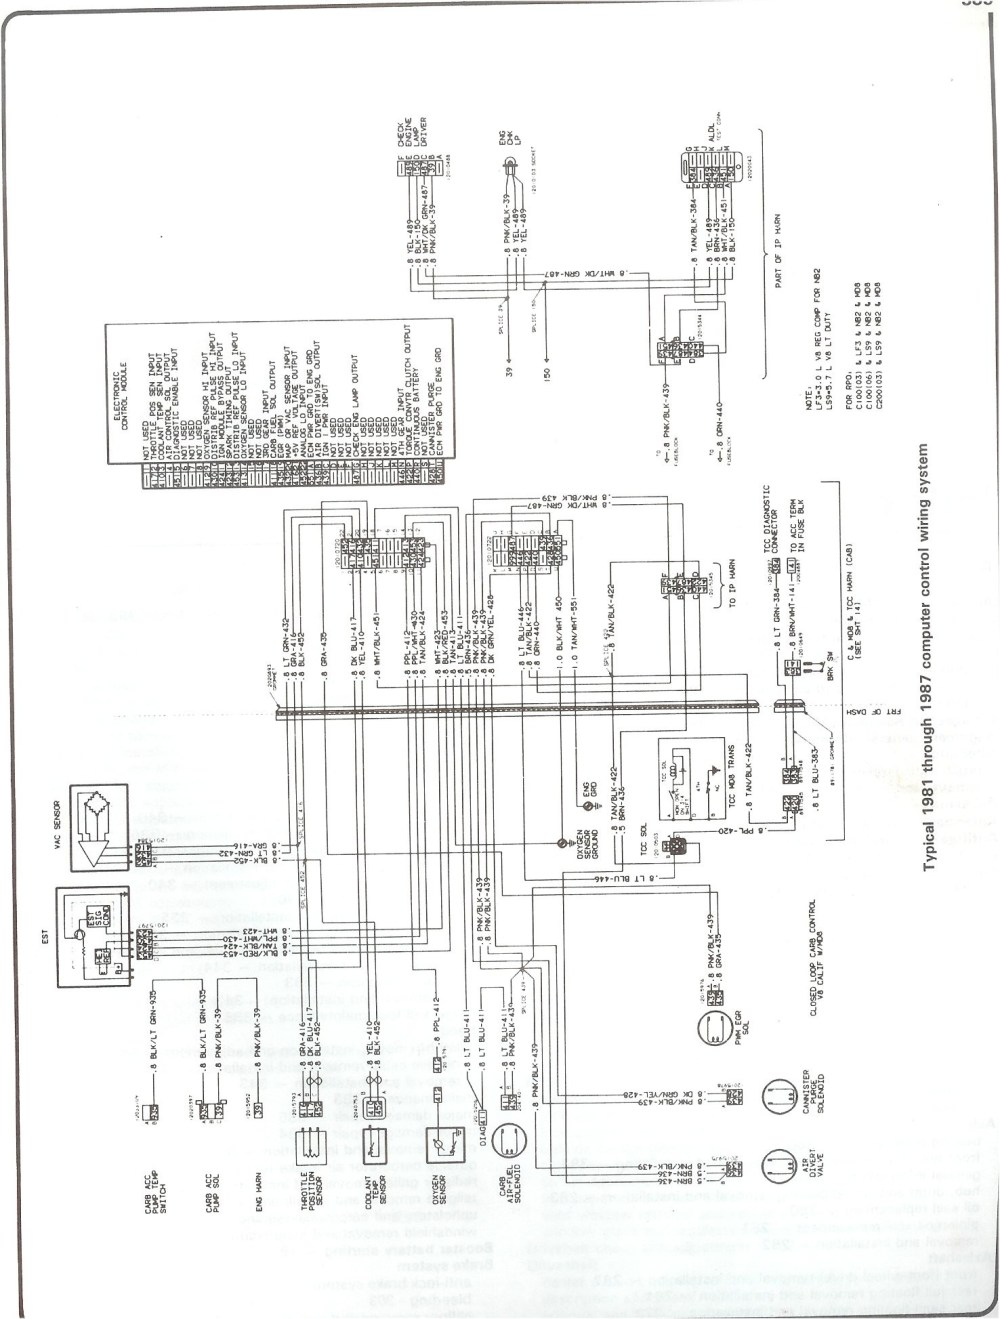 medium resolution of 1986 chevy silverado fuse box diagram wiring diagram centre87 chevy fuse diagram wiring diagrams konsult87 chevy